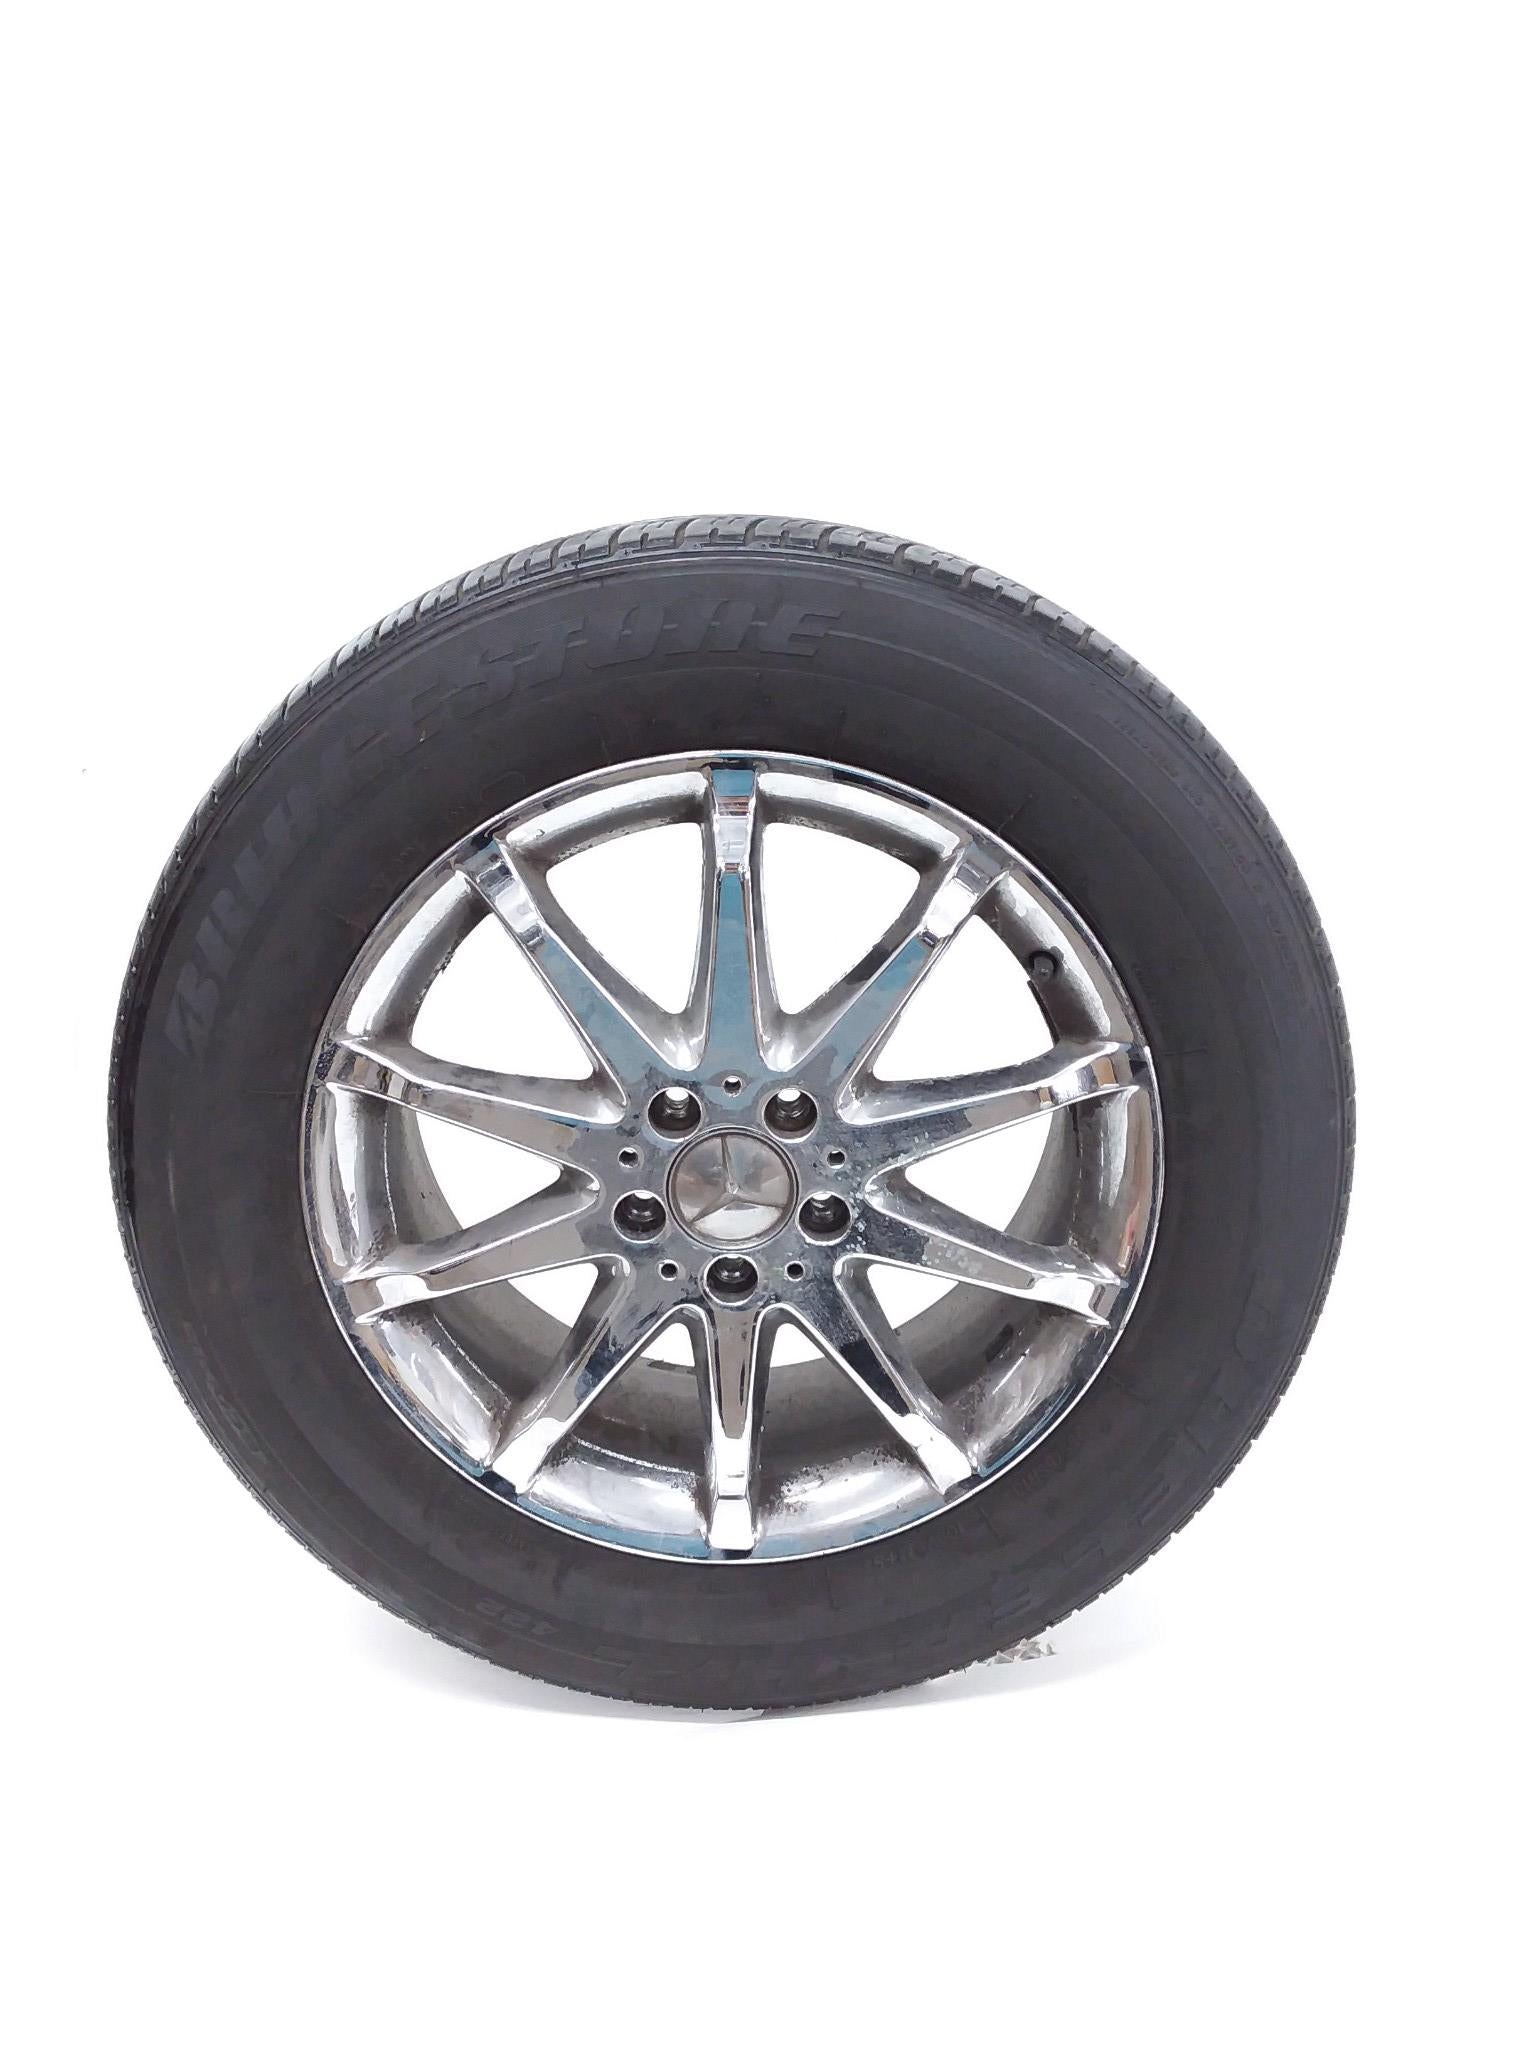 06 - 09 MERCEDES W251 R350 R500 WHEEL & TIRE 255/55R18 / 10 SPOKE OEM 6.3/32nds - Click Receive Auto Parts